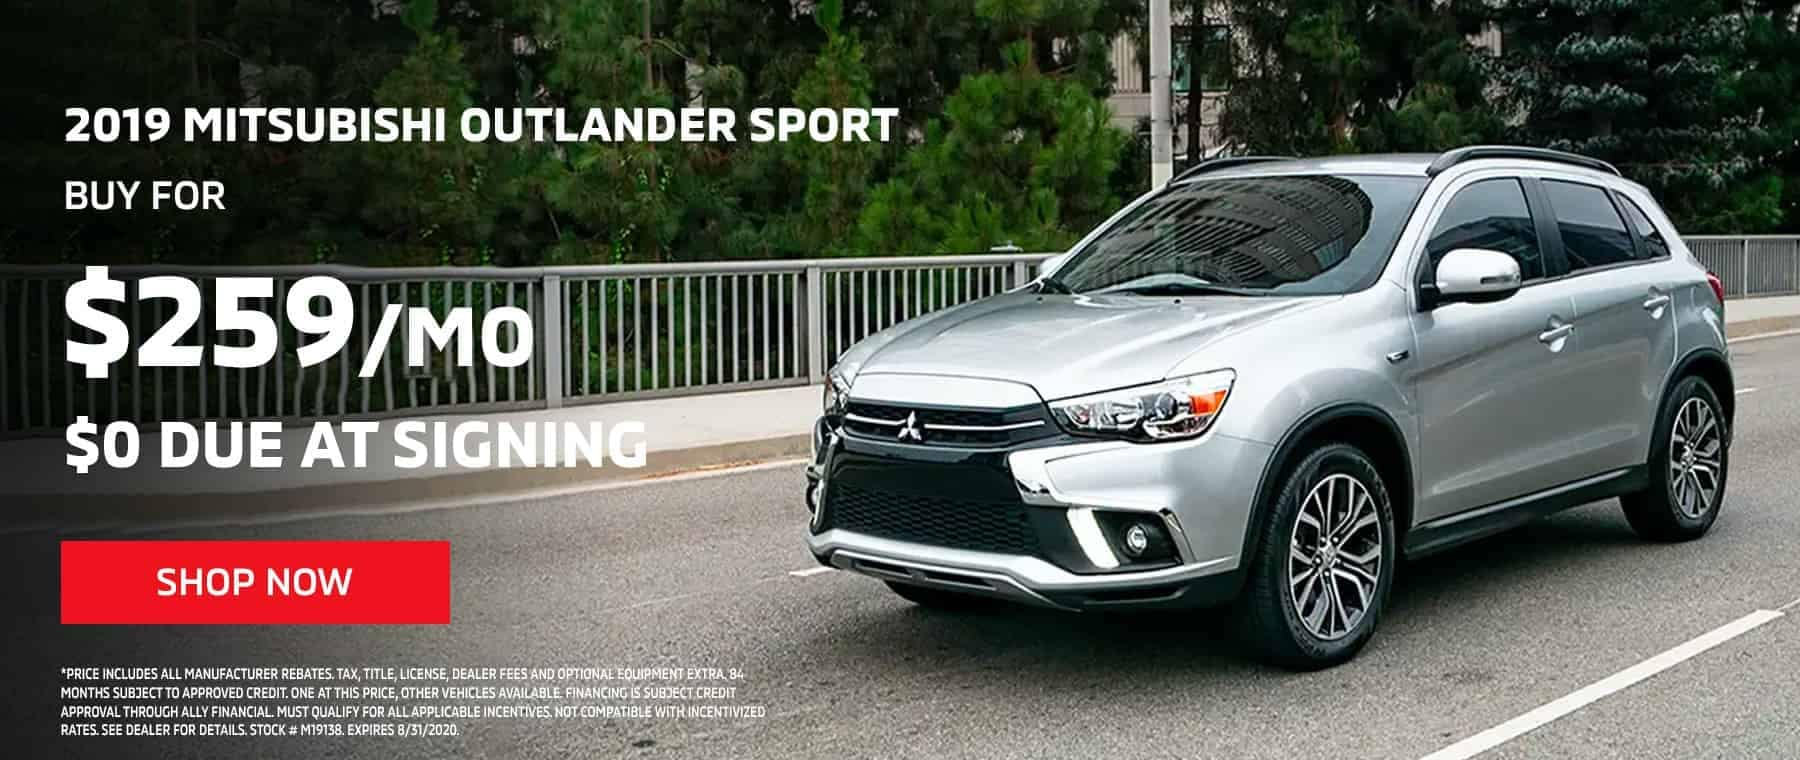 2019 OUTLANDER SPORT – AS LOW AS $259 PER MONTH, $0 DOWN